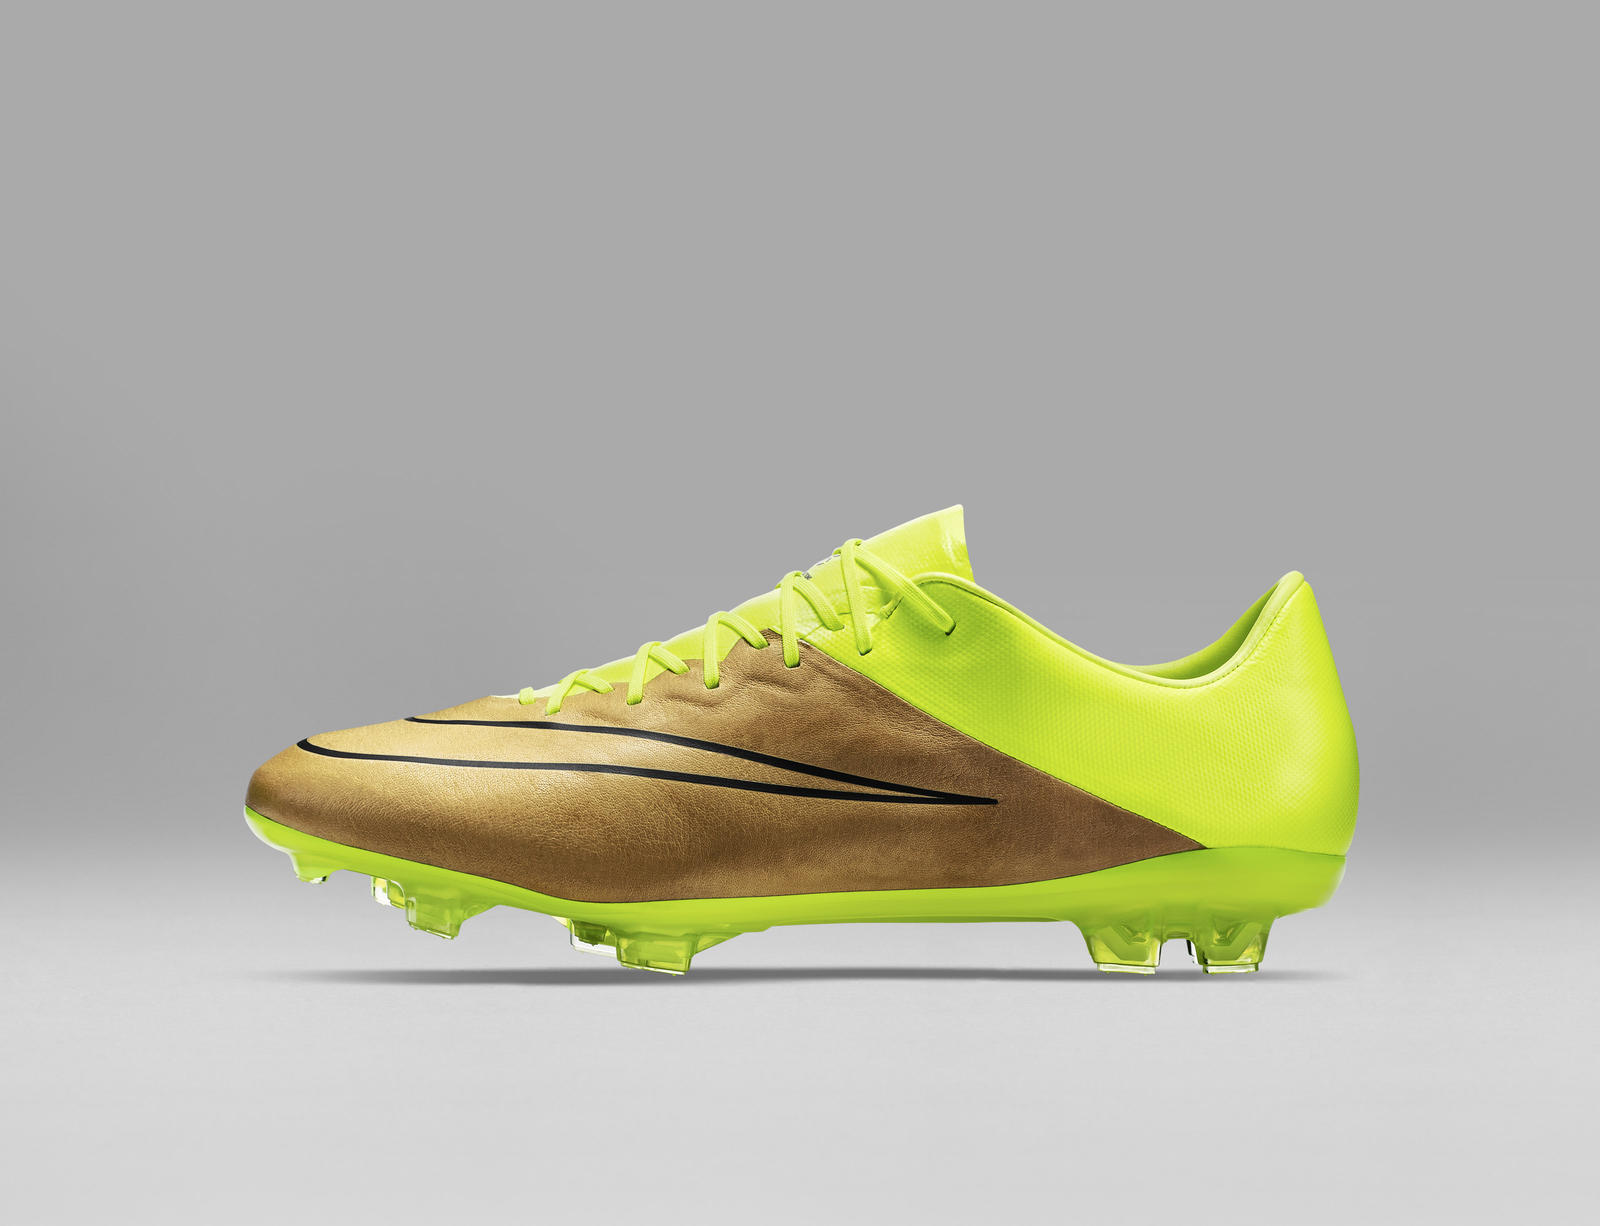 the 2017 nike mercurial vapor tech craft football boots bring the most  stylish look yet to; mobile gallery image